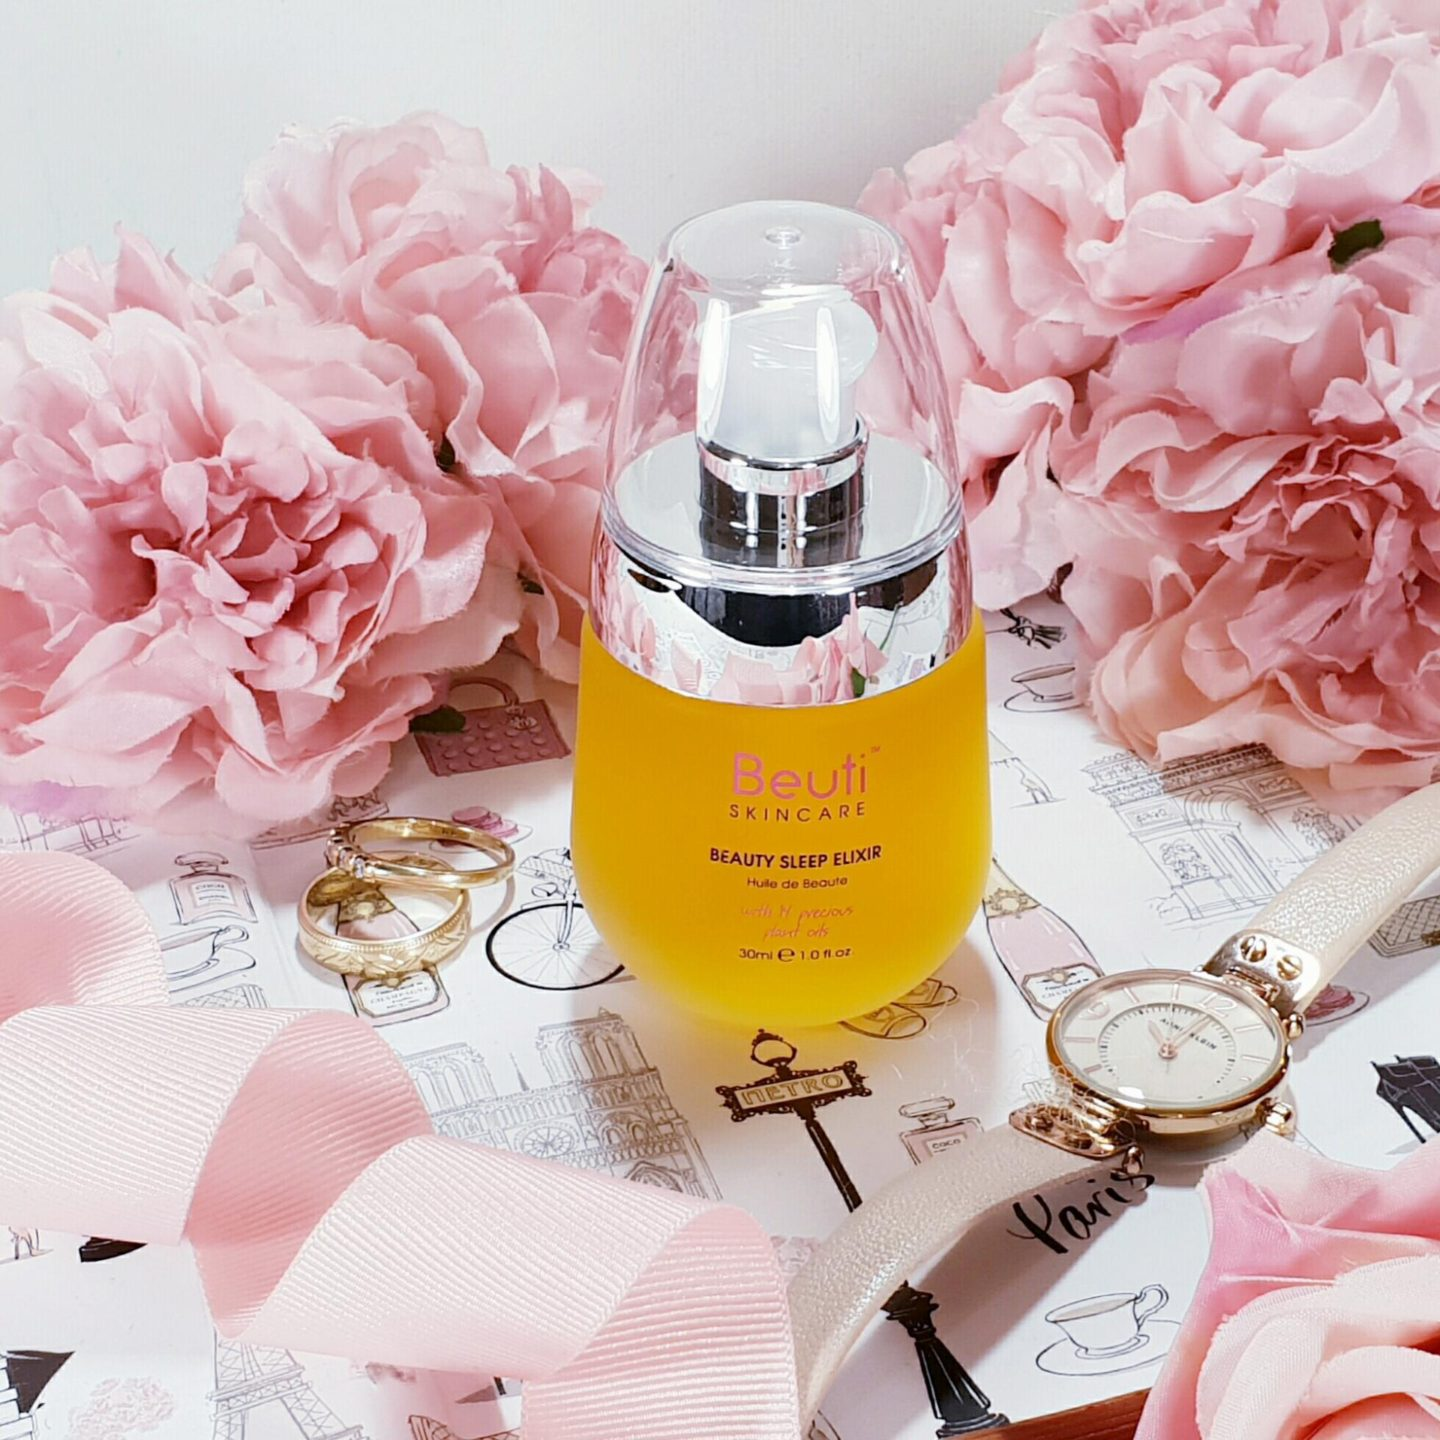 Beauty Sleep Elixir nighttime facial oil